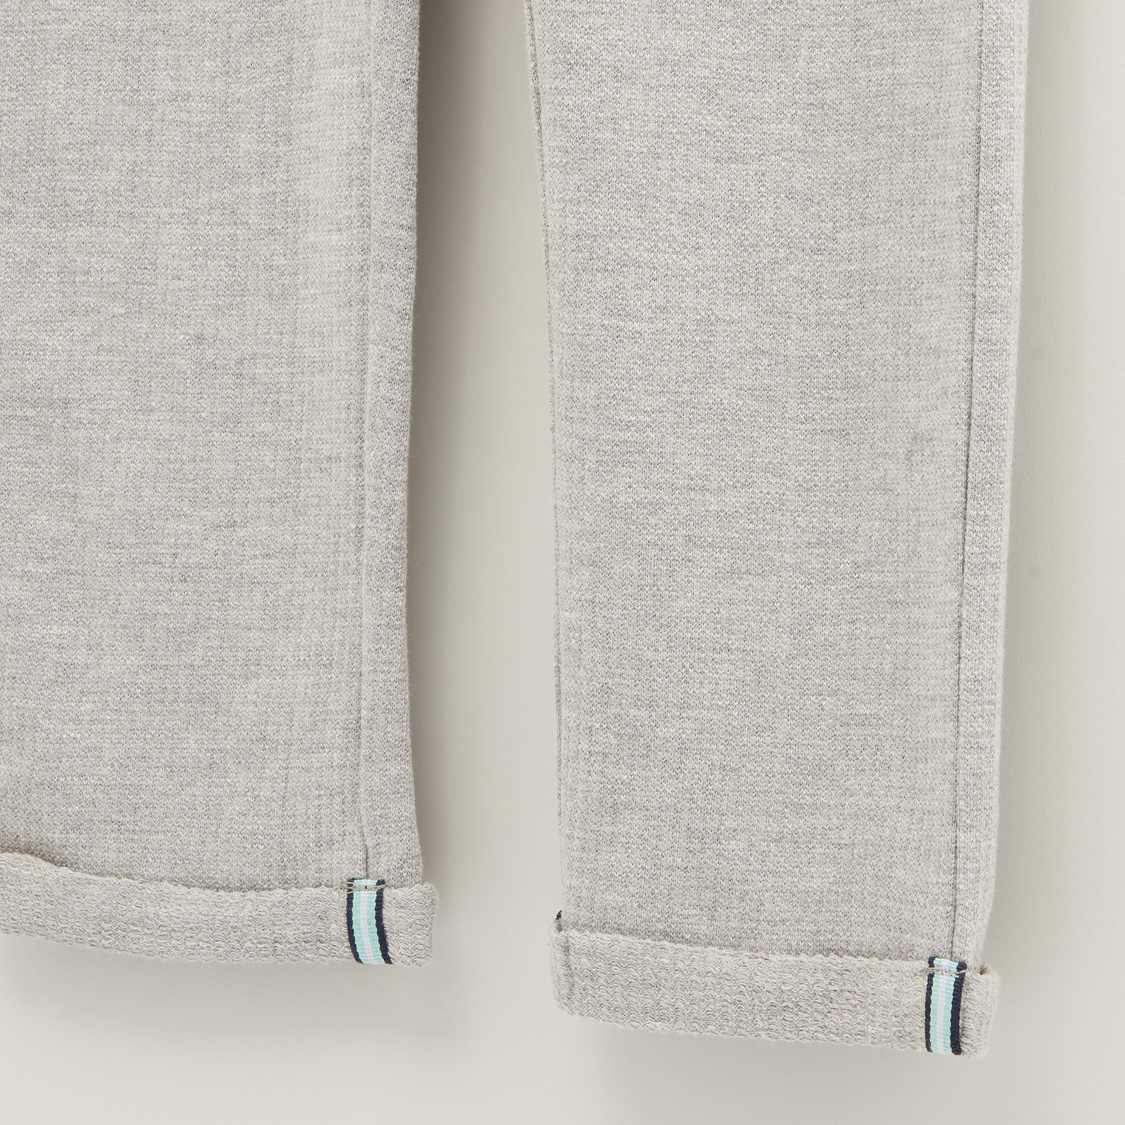 Embroidered Joggers with Pockets and Drawstring Closure